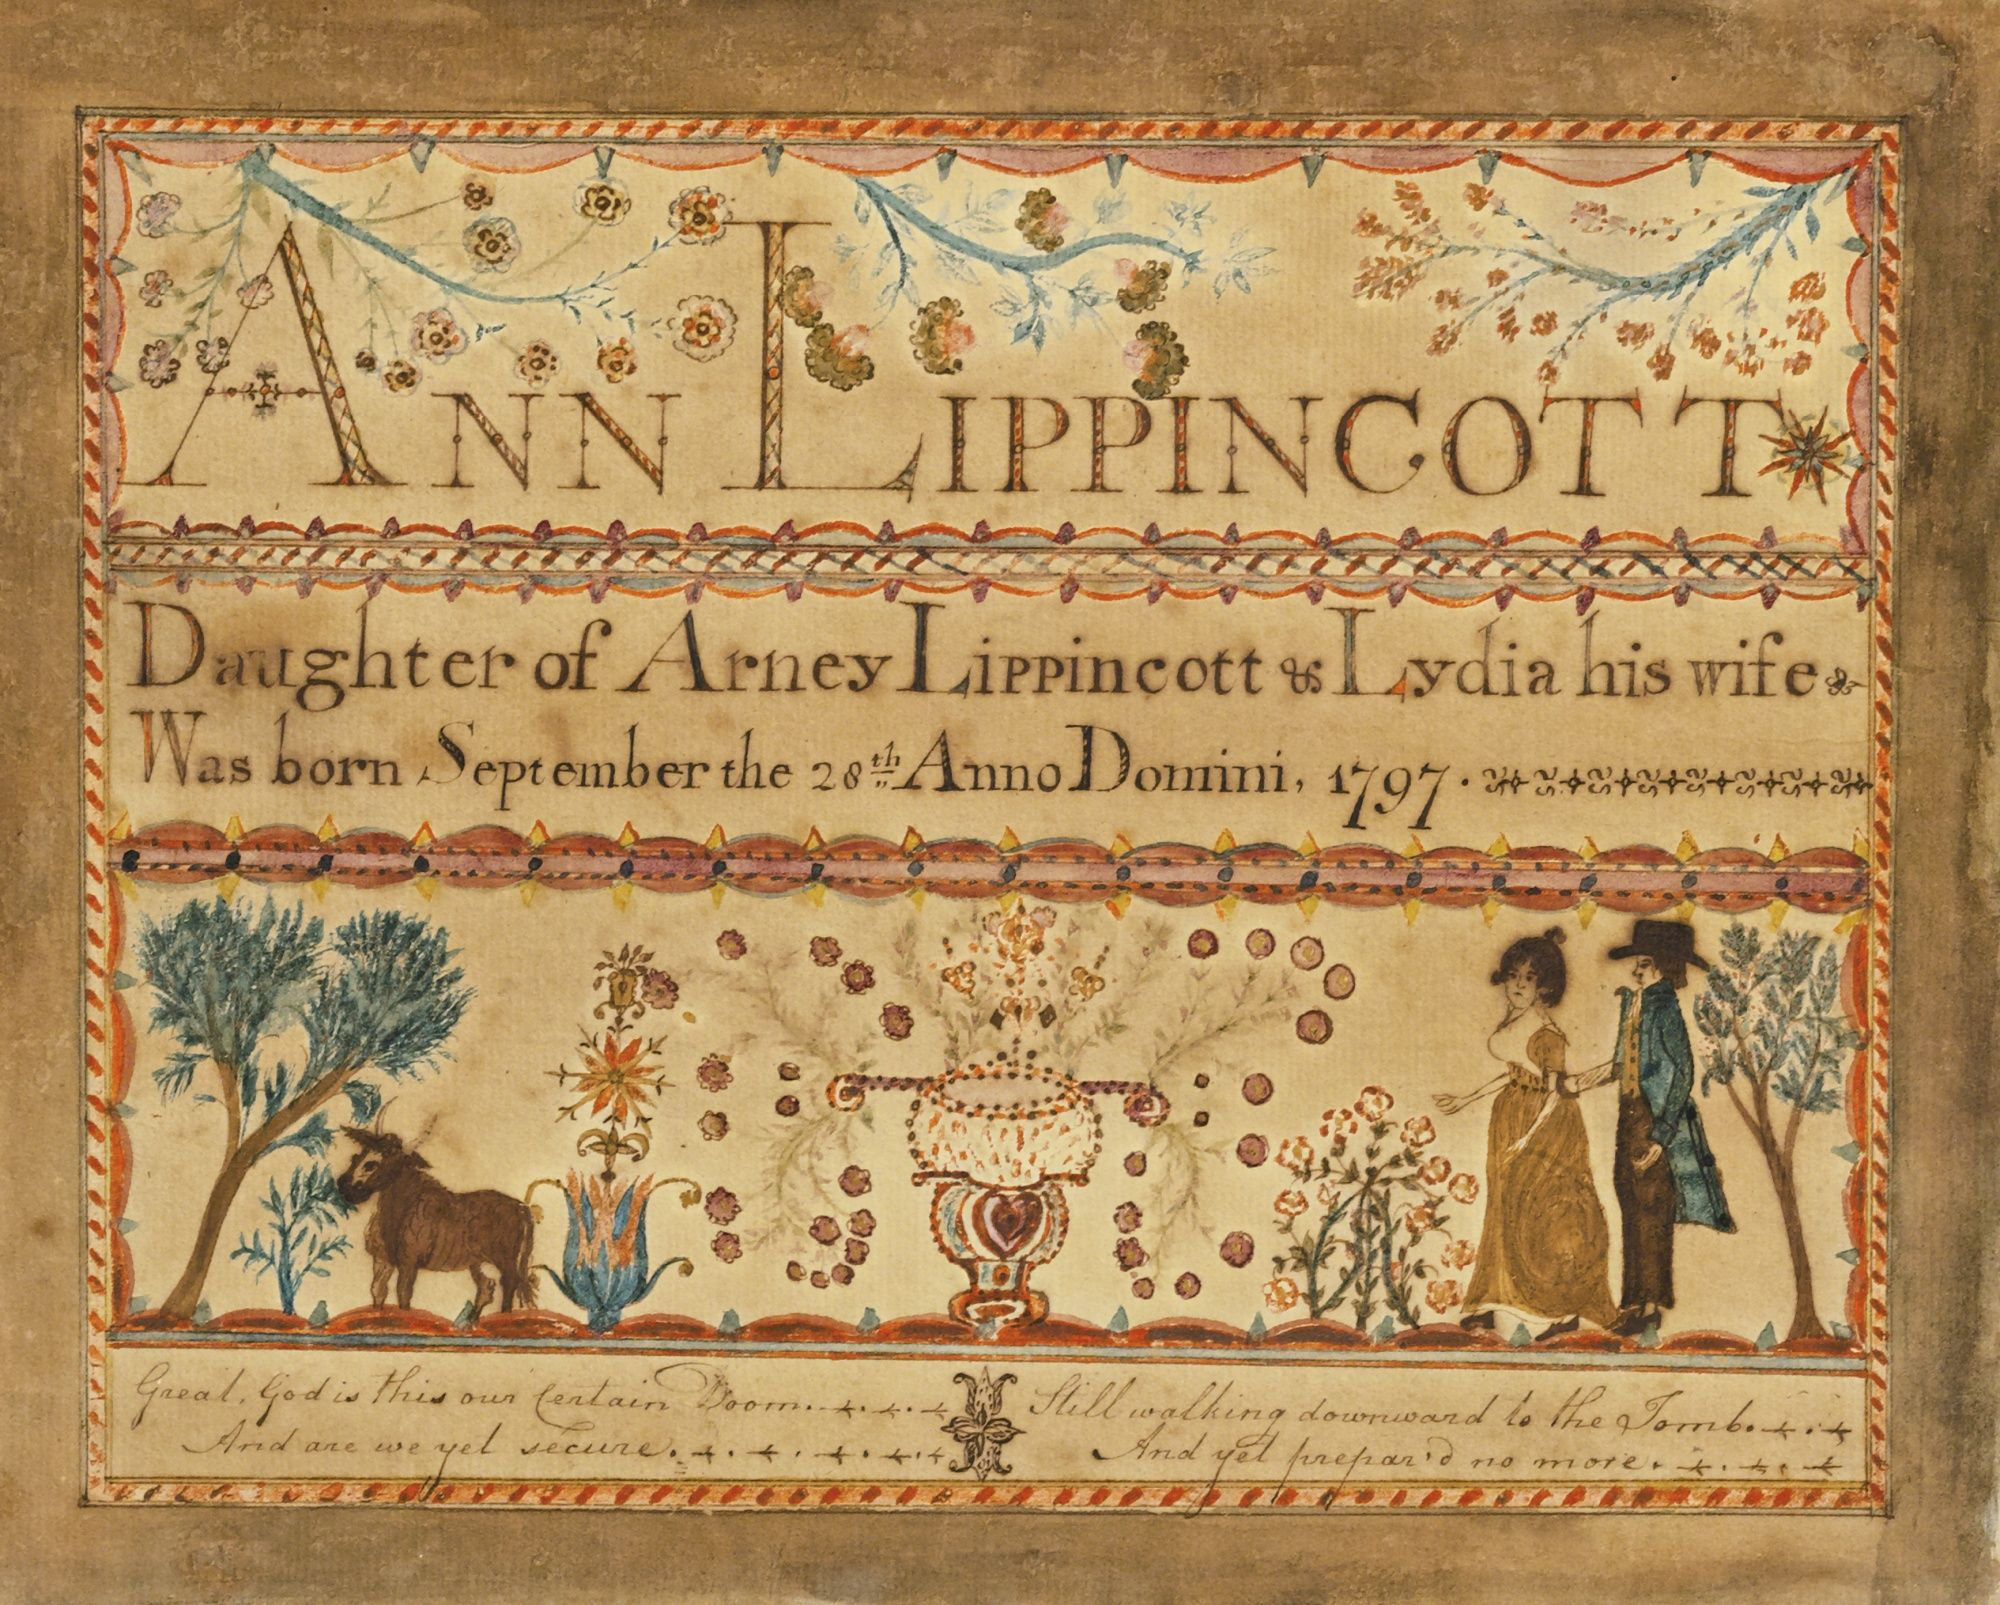 620 watercolor birth certificate for ann lippincott the new 620 watercolor birth certificate for ann lippincott the new jersey artist burlington county new aiddatafo Image collections